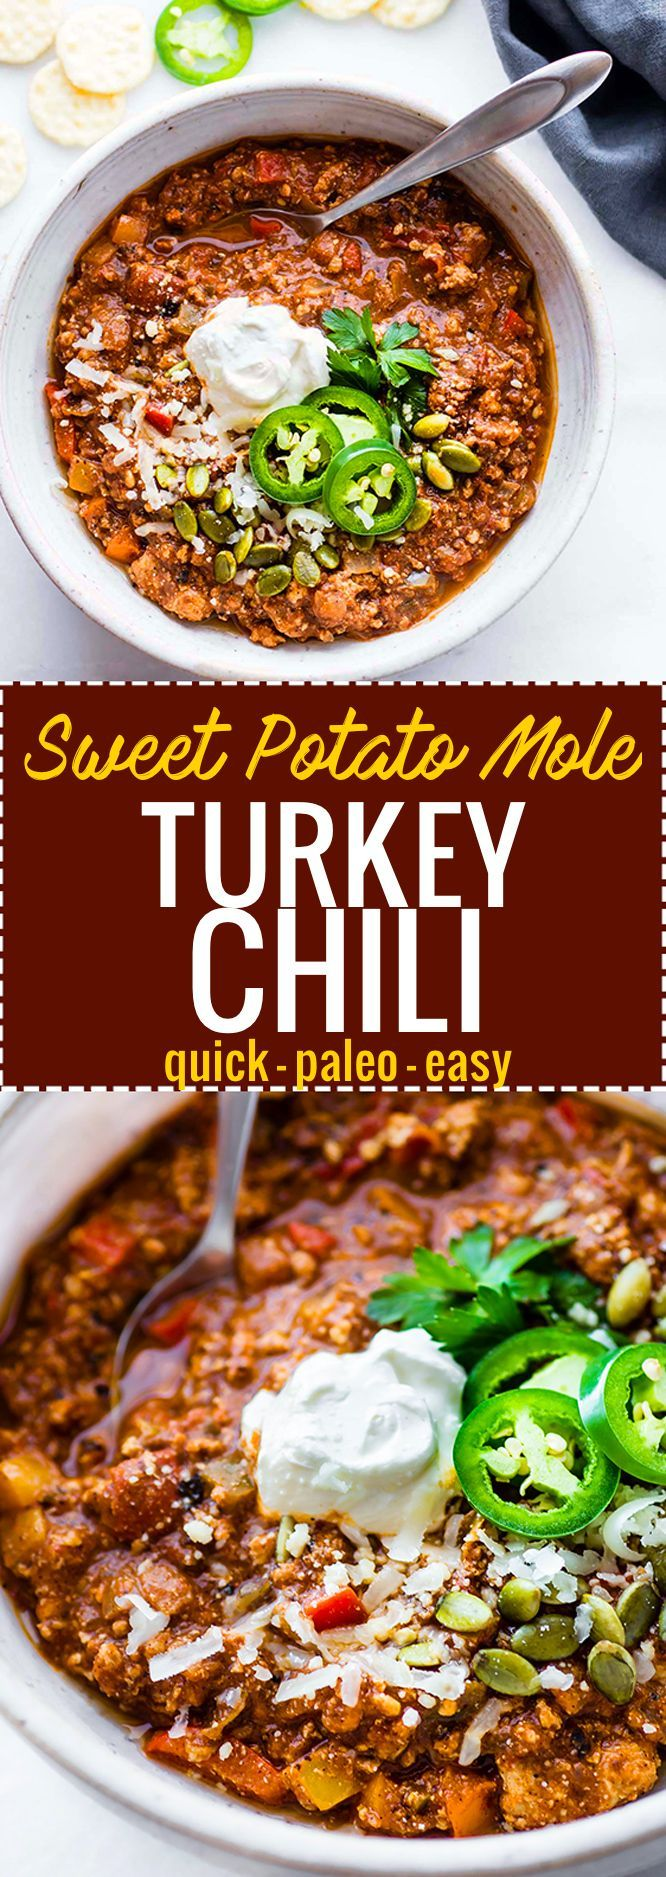 Quick Sweet Potato Mole Turkey that's Paleo friendly, simple to make, and healthy! A hearty Turkey chili made with an easy homemade sweet potato mole sauce. Great to feed a crowd, for meal prep, or to use up those holiday leftovers. http://www.cottercrunch.com /cottercrunch/